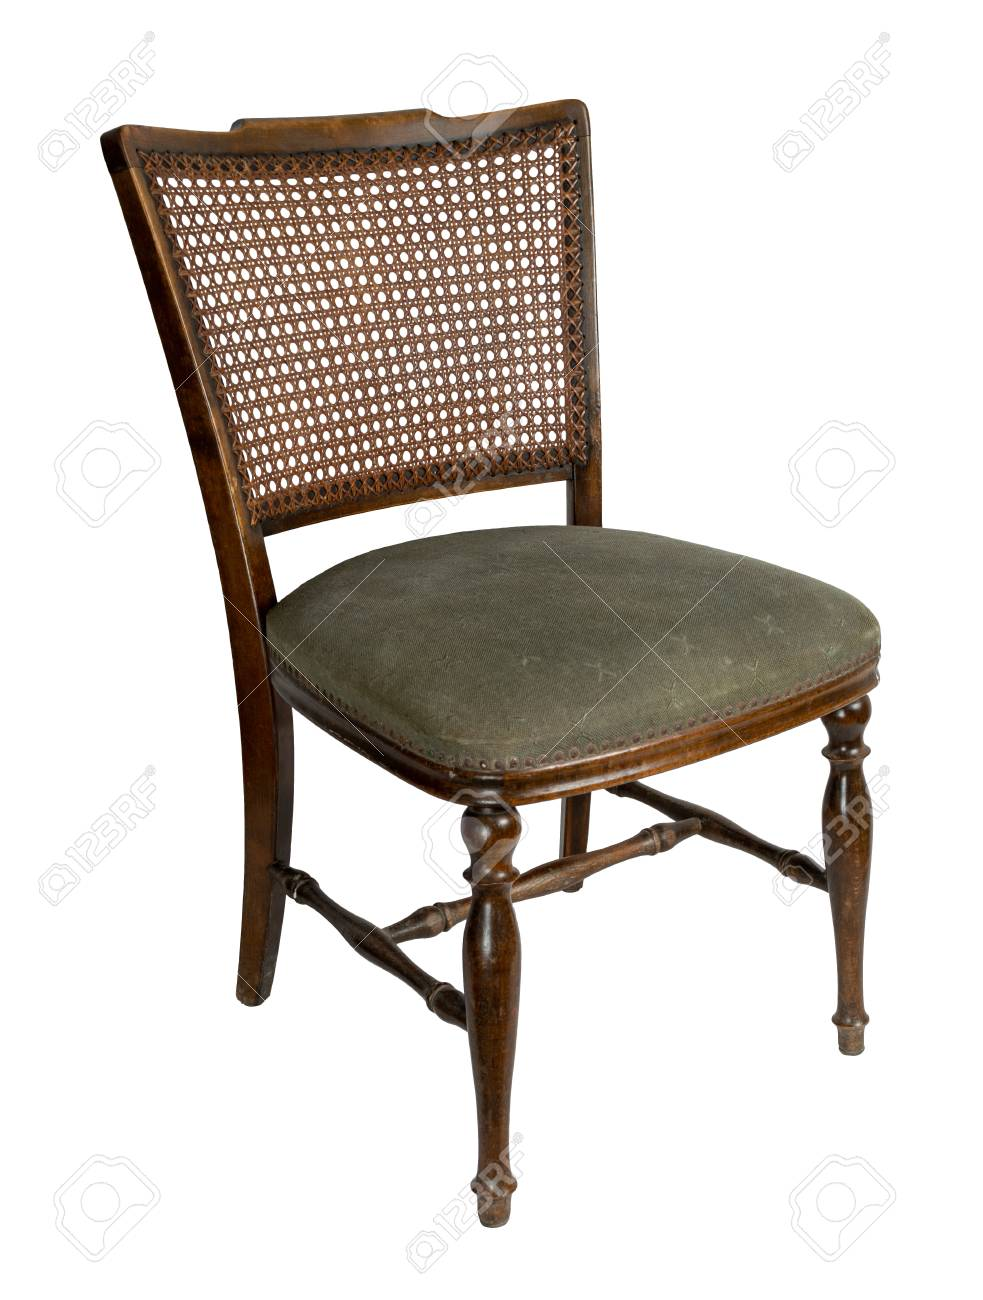 Prime Retro Wooden French Cane Back Dining Chair Isolated On White Ibusinesslaw Wood Chair Design Ideas Ibusinesslaworg